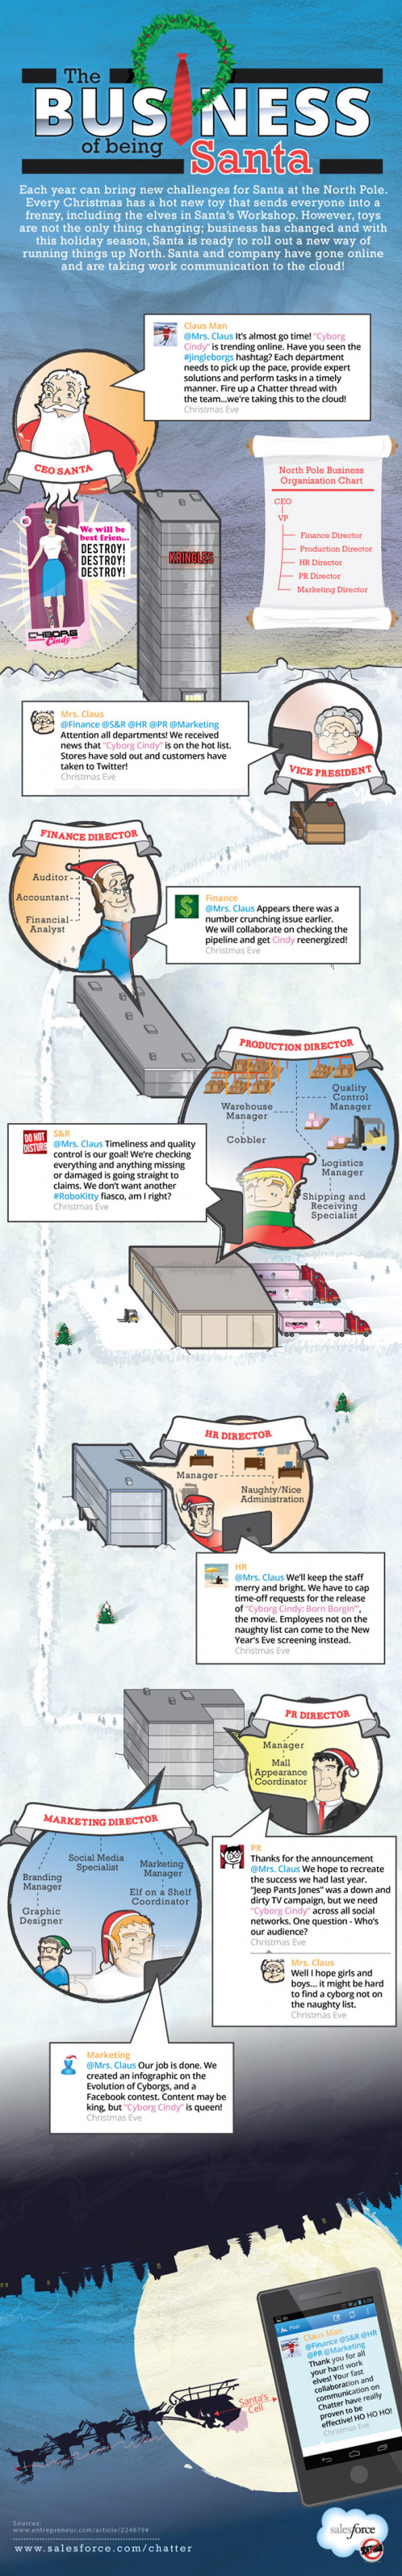 Santa&#039;s Workshop improves teamwork with cloud computing! Infographic